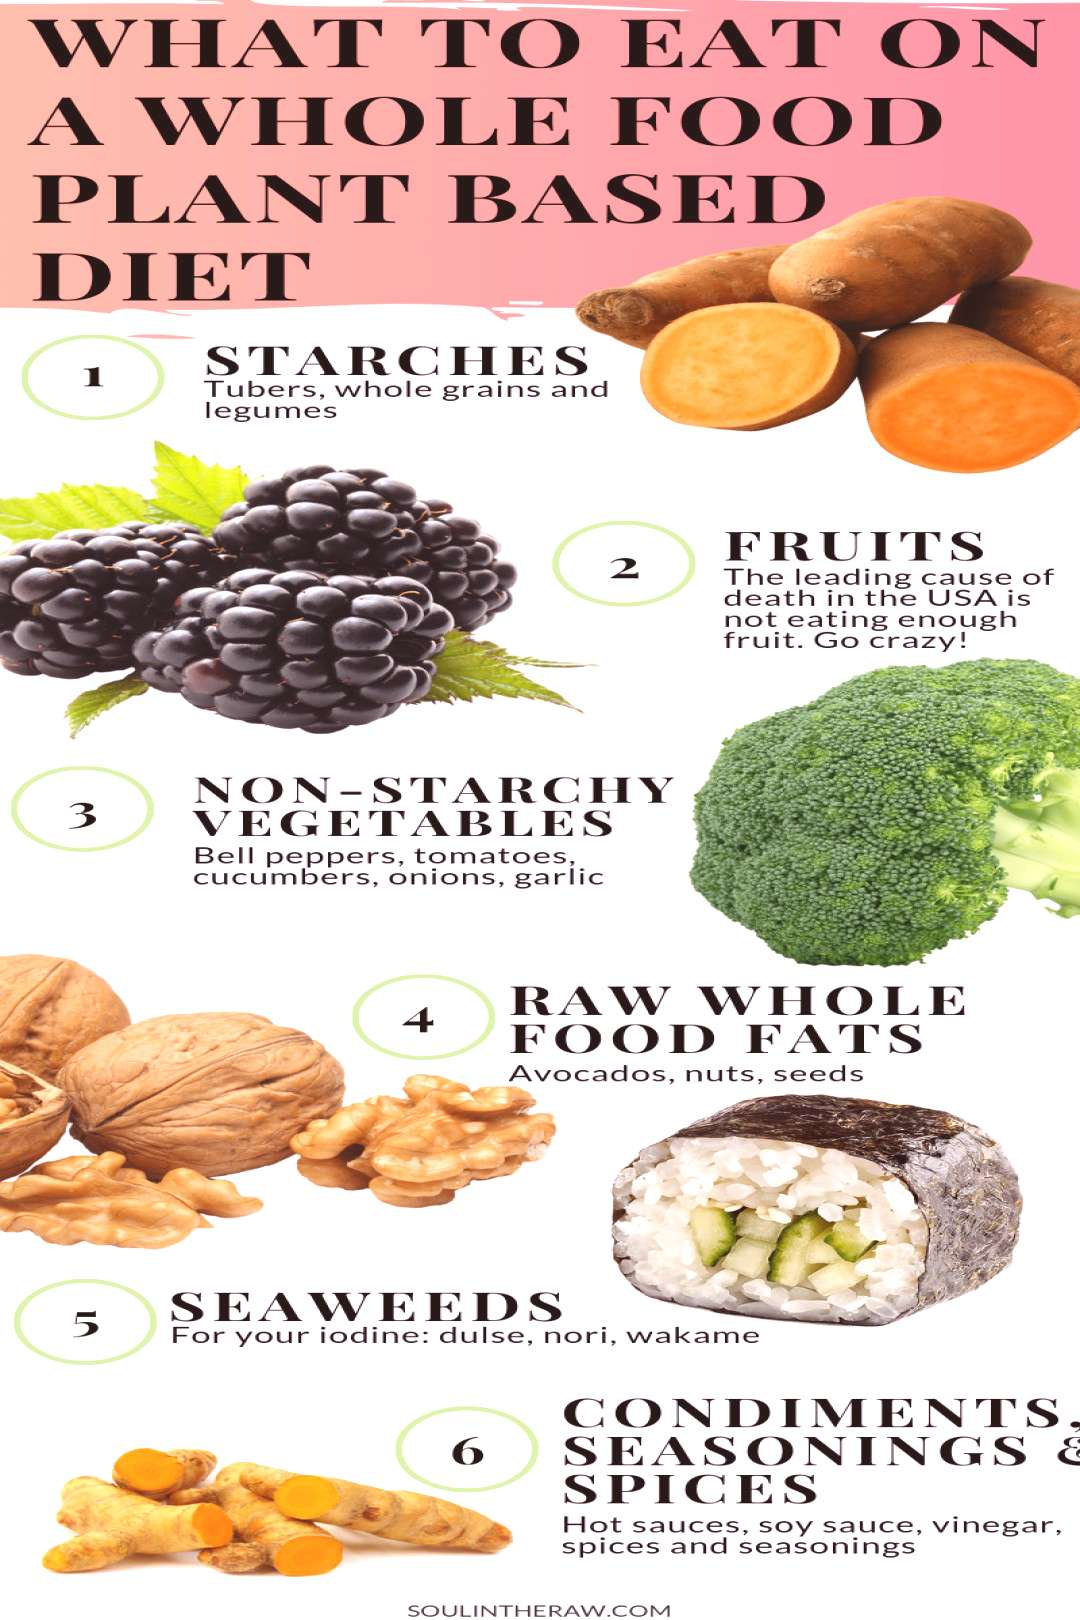 What to eat on a whole food, plant based diet - What to eat on a whole food, plant based diet if y